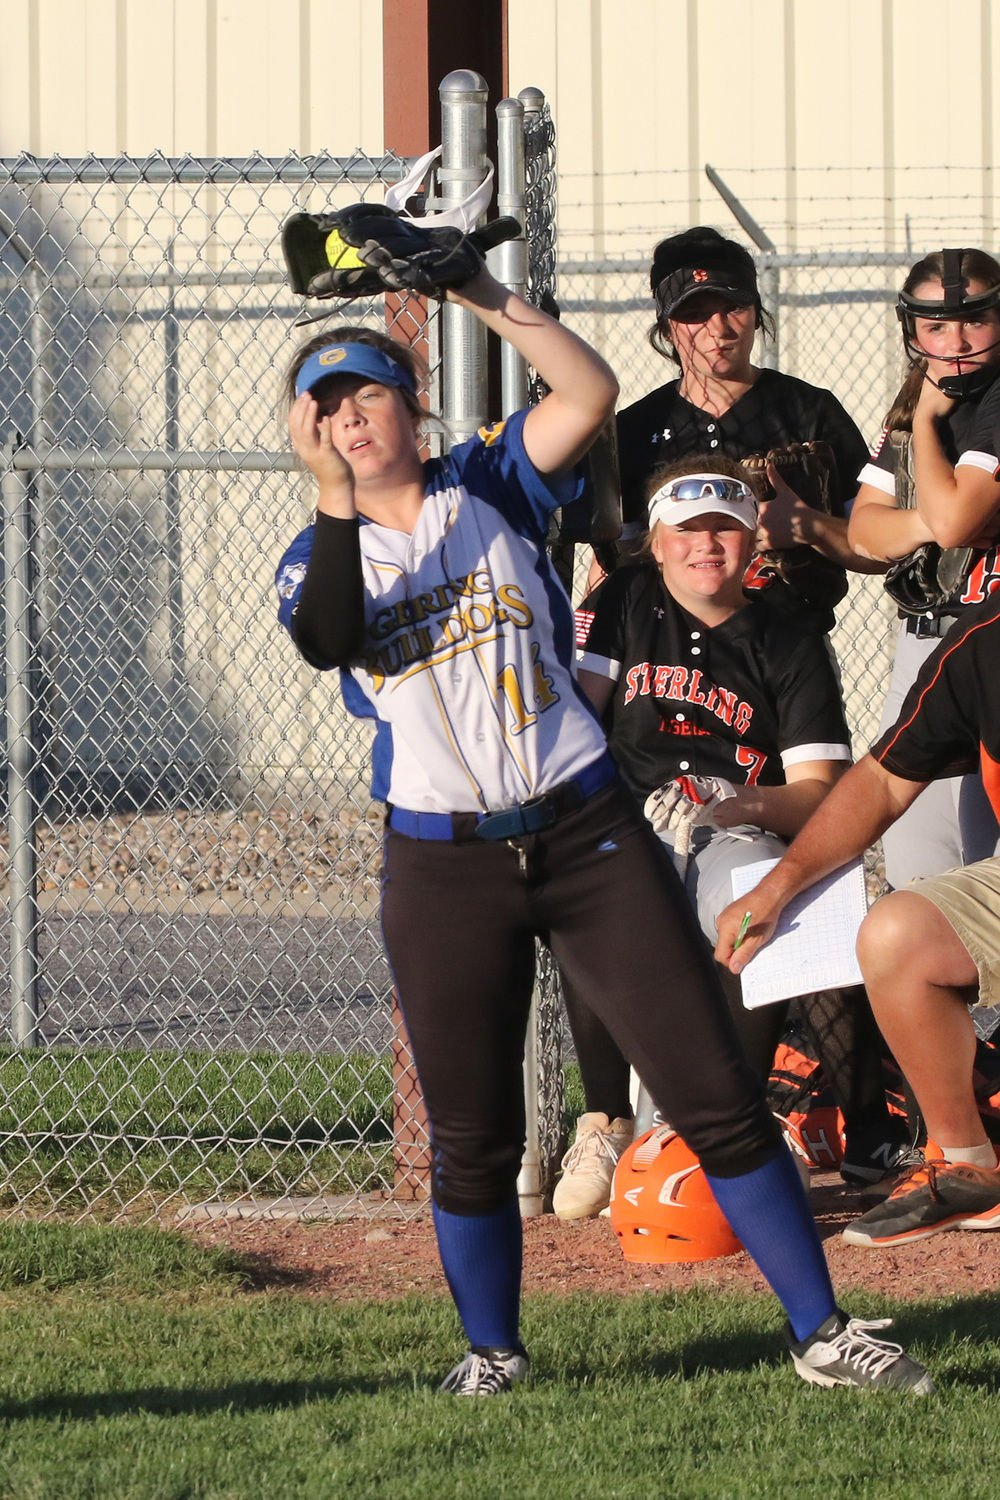 Gering senior softball player Victoria Brady taking in her final season with passion